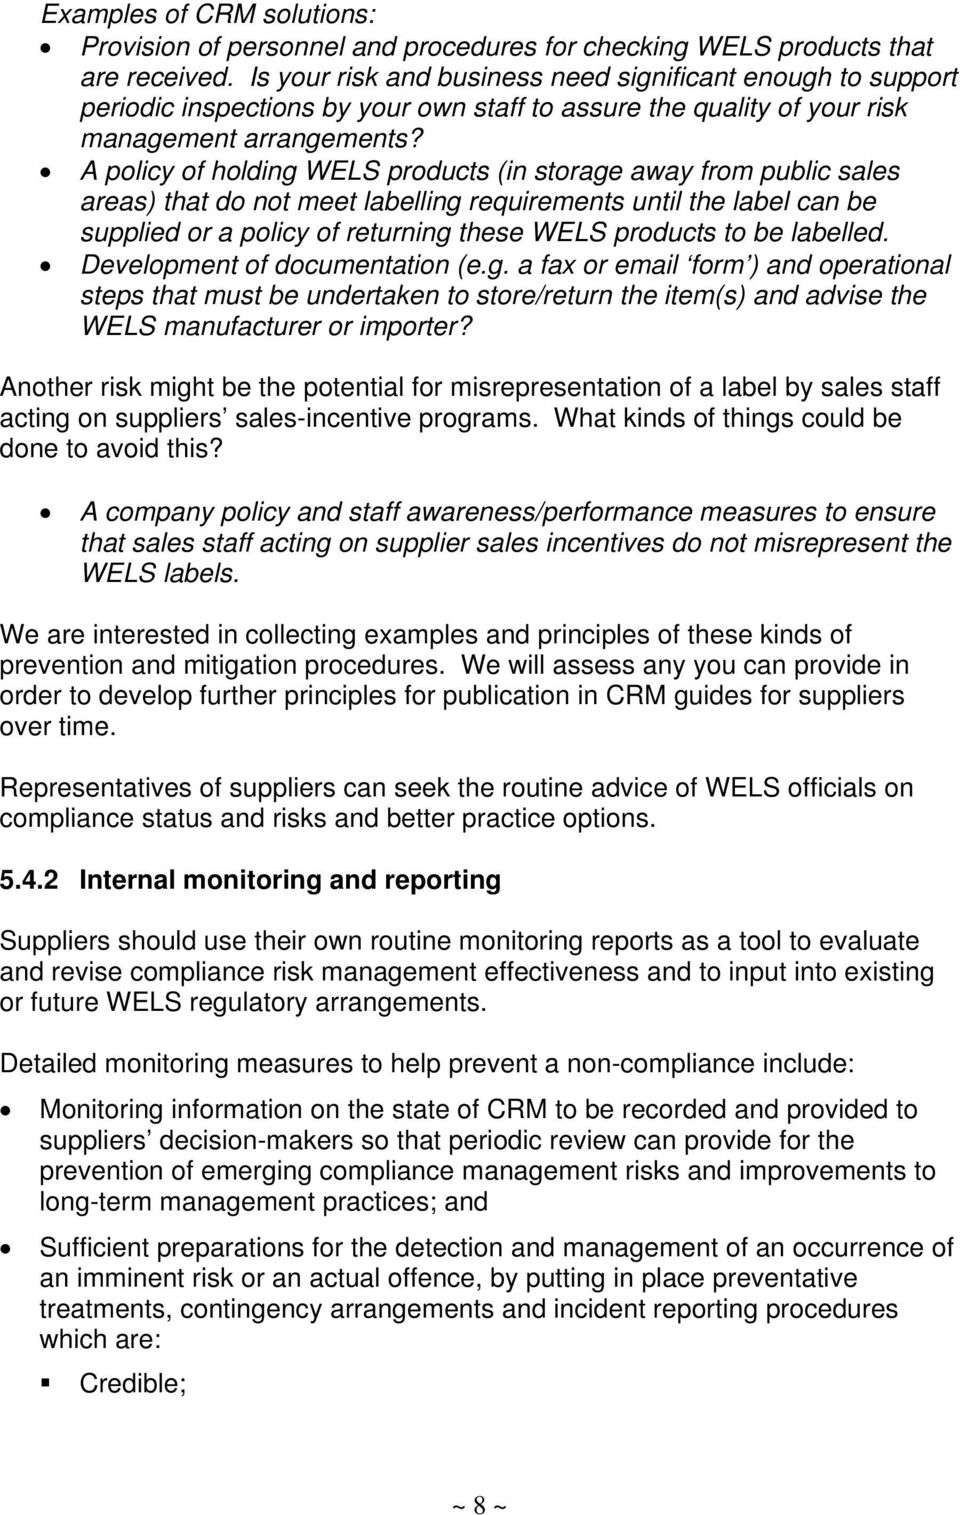 A policy of holding WELS products (in storage away from public sales areas) that do not meet labelling requirements until the label can be supplied or a policy of returning these WELS products to be